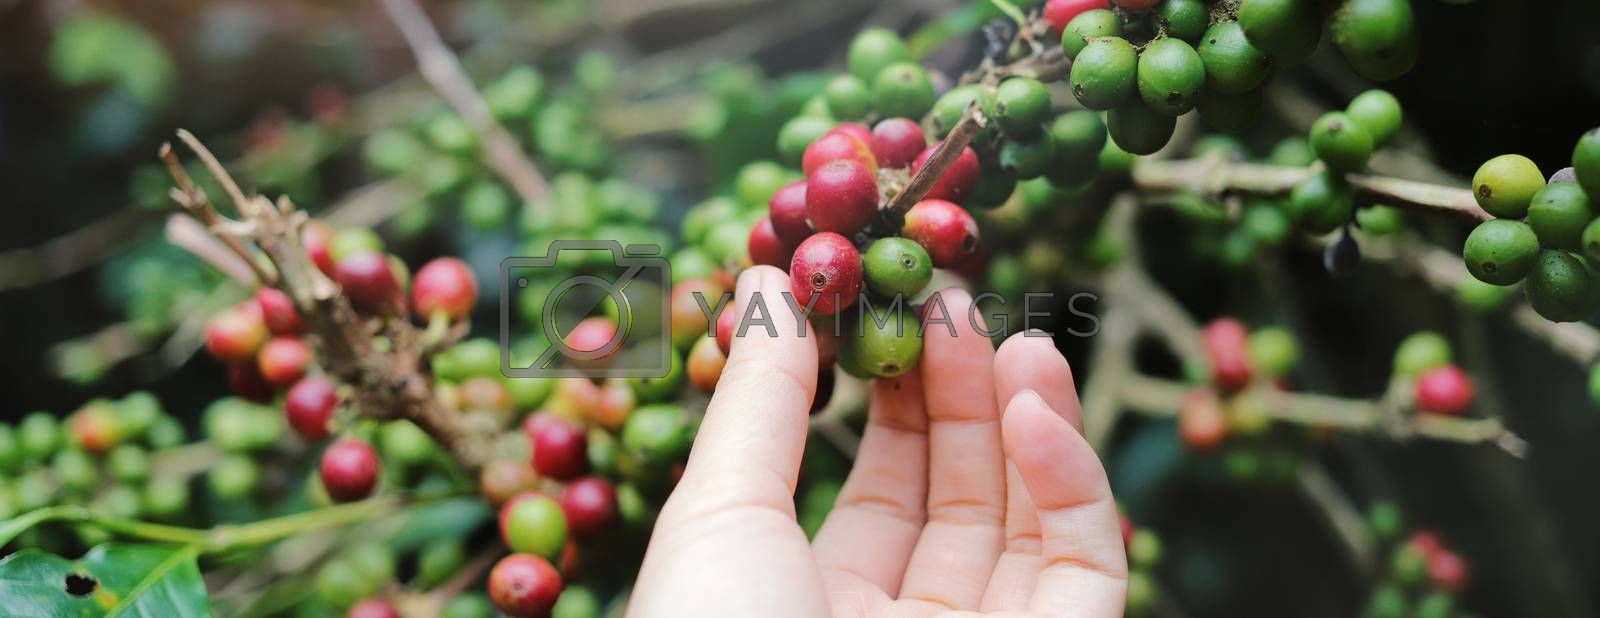 Close up woman hand picking red arabica coffee beans on coffee plant, photo banner for website header design